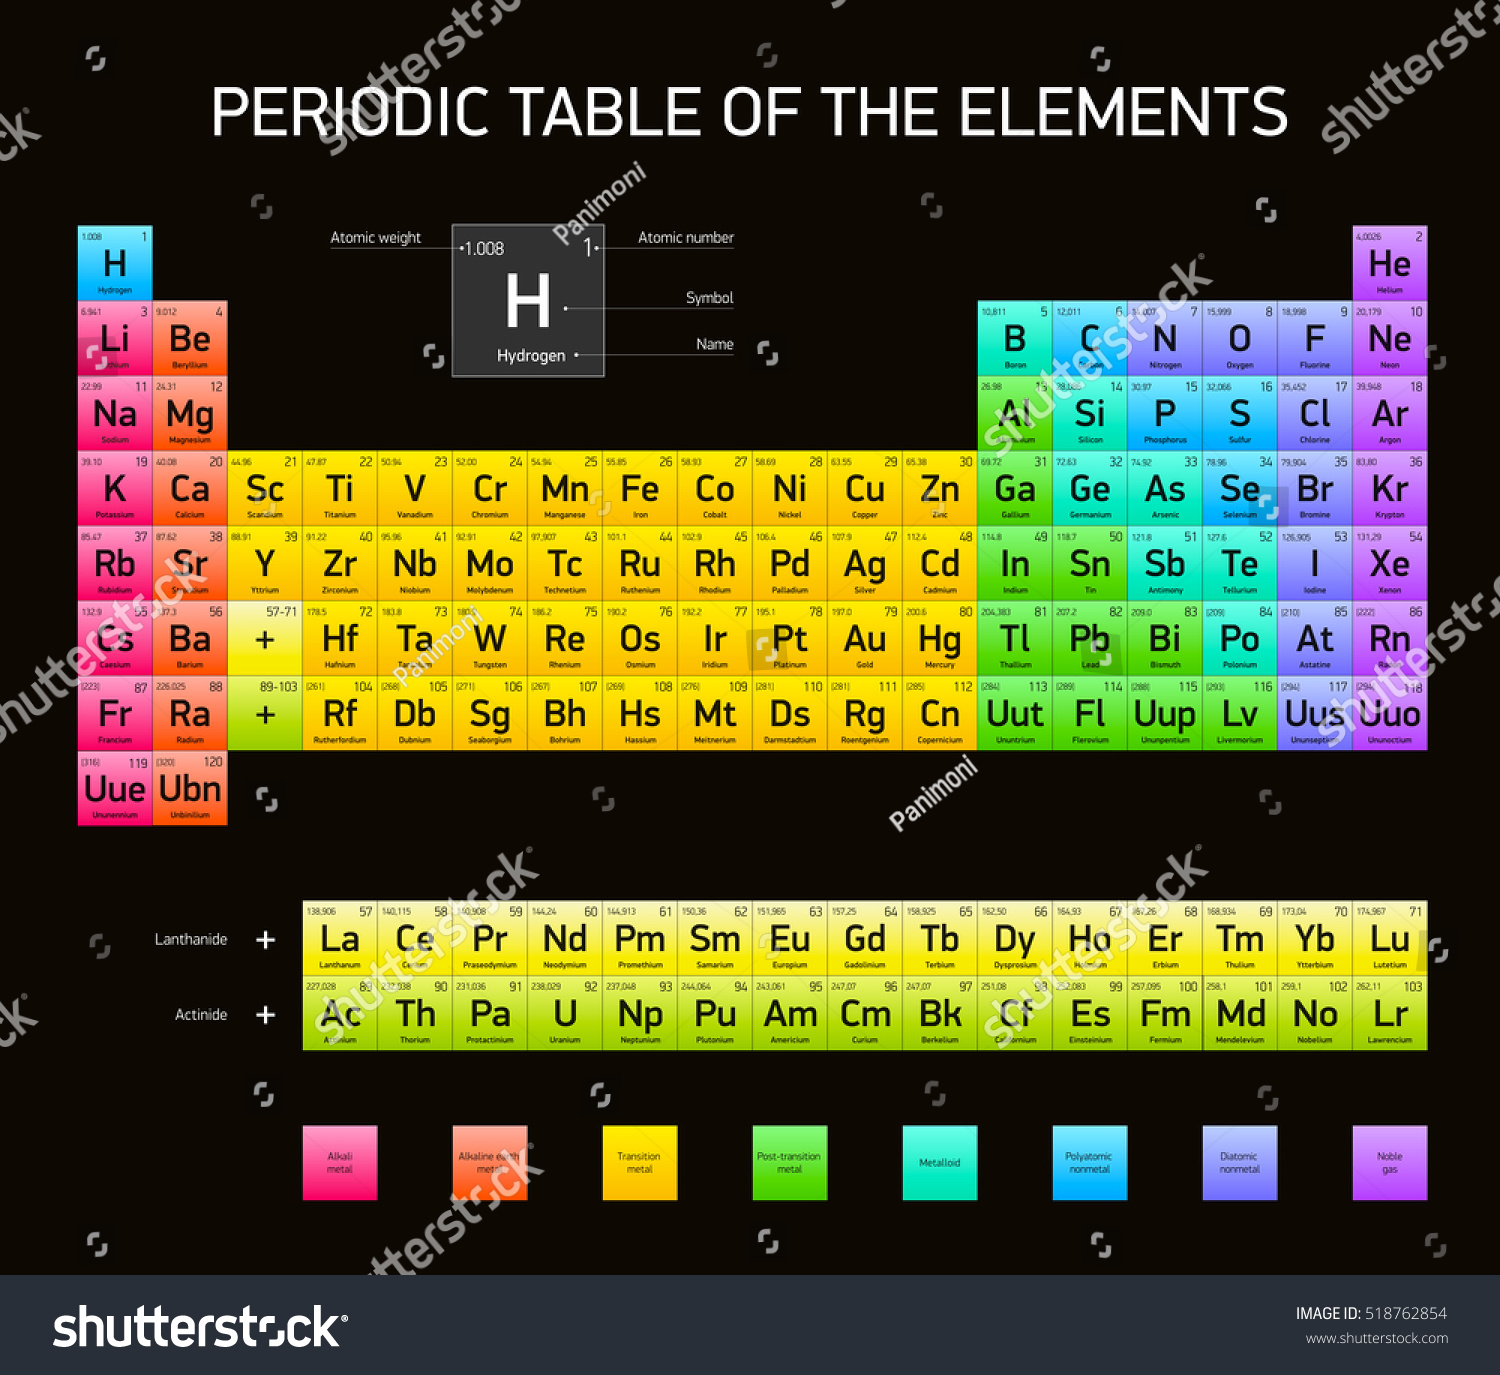 Periodic table elements vector design extended stock vector periodic table of the elements vector design extended version rgb colors black gamestrikefo Image collections